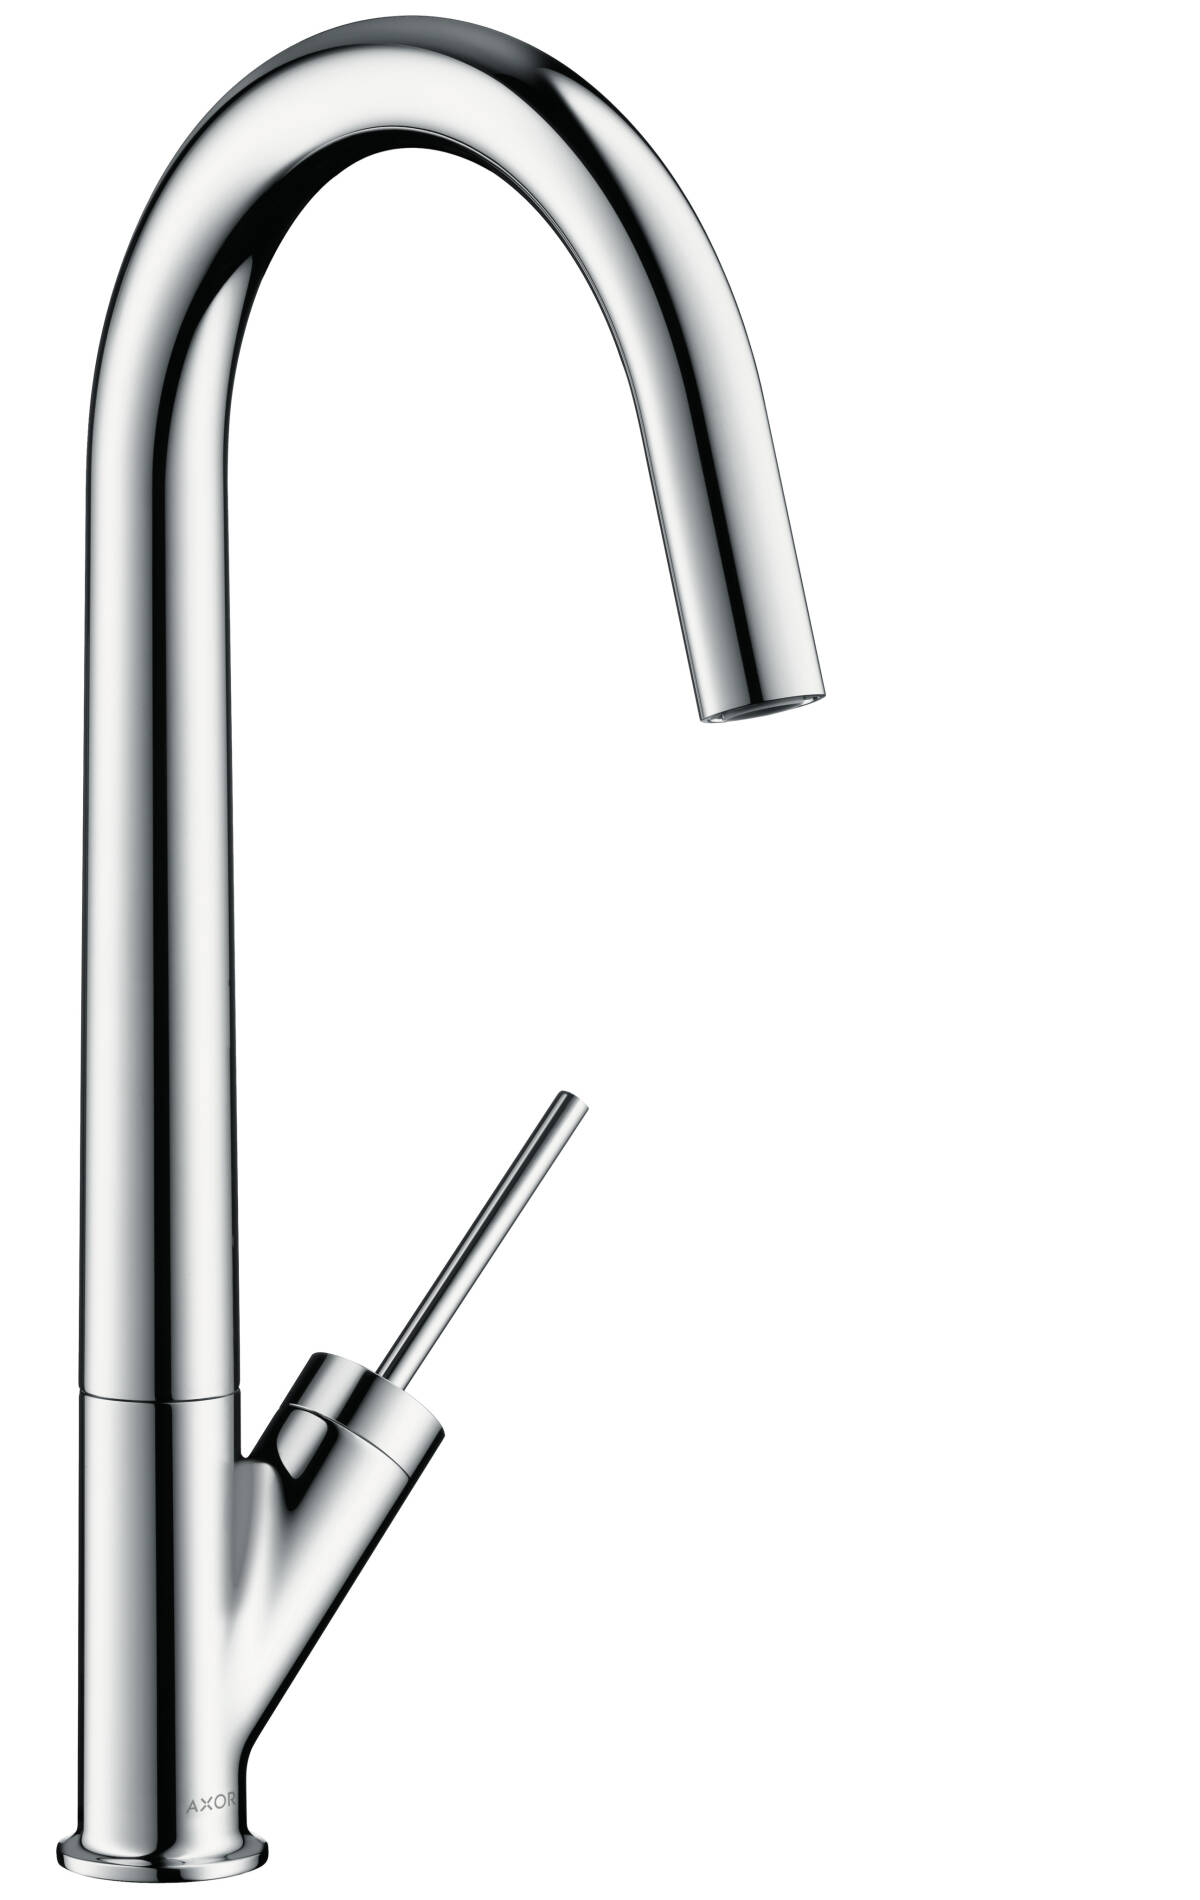 Single lever kitchen mixer 300 with swivel spout, Polished Black Chrome, 10822330